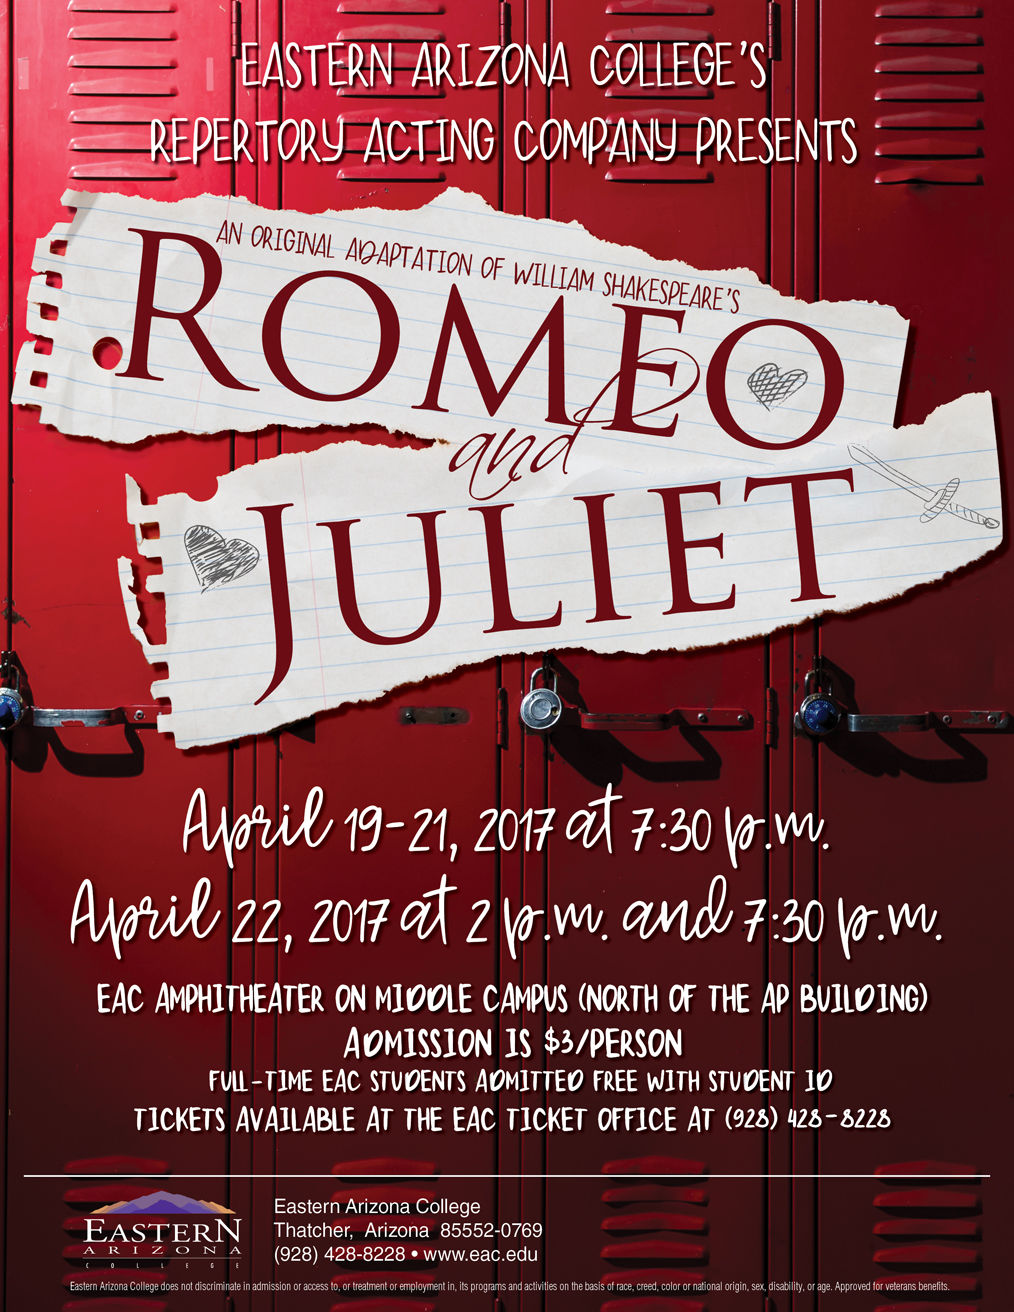 romeo and juliet article Detailed information on shakespeare's romeo and juliet from scholars and editors, from your trusted shakespeare source.